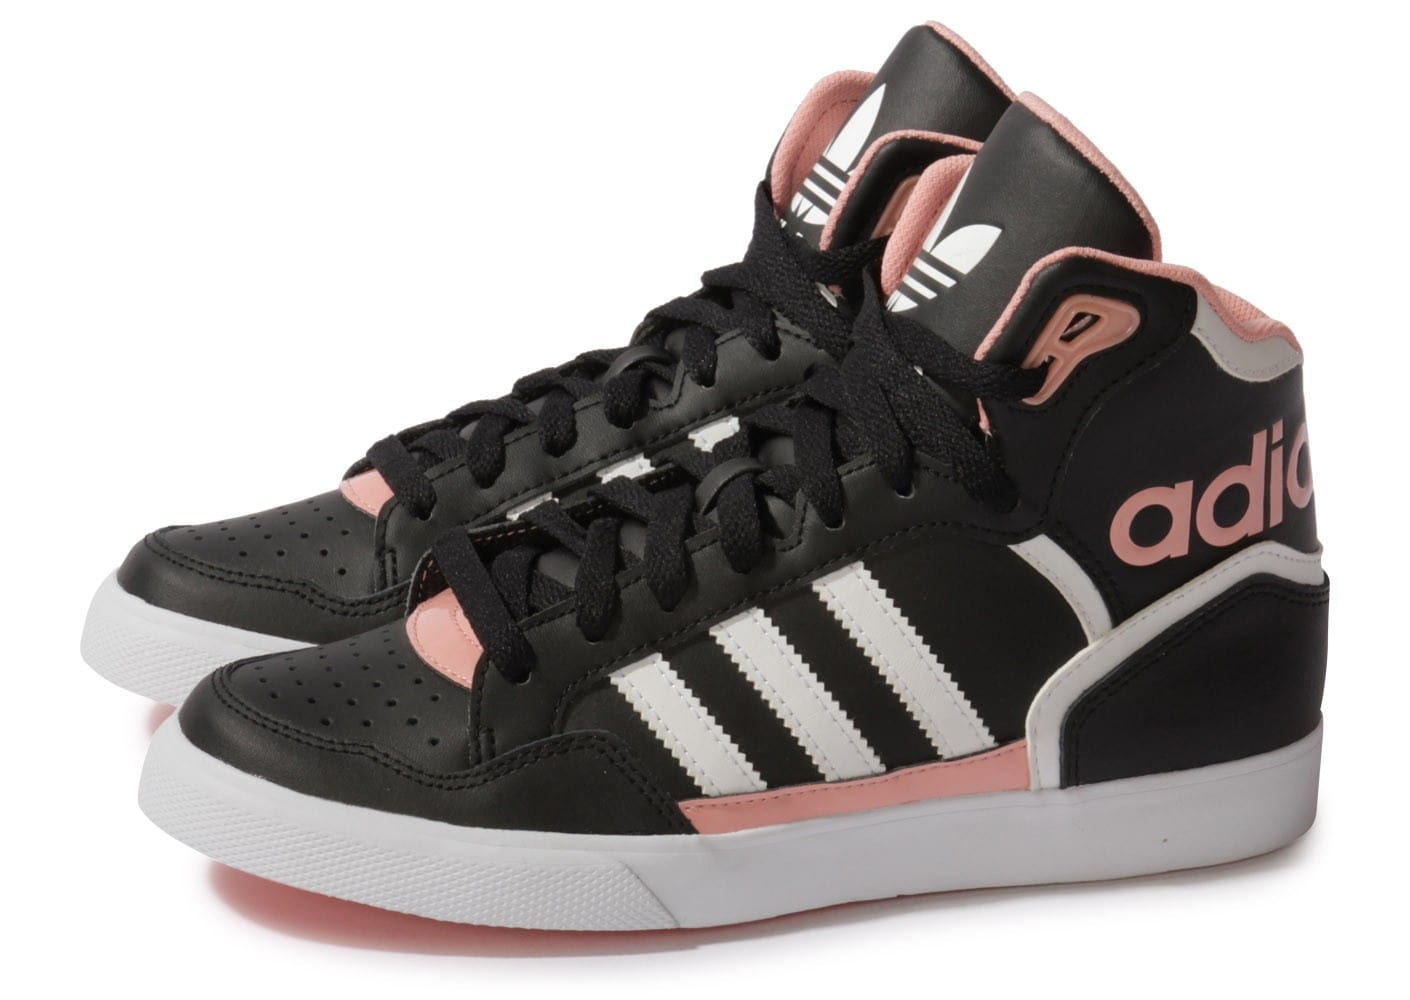 Chaussure Adidas Extaball baskets